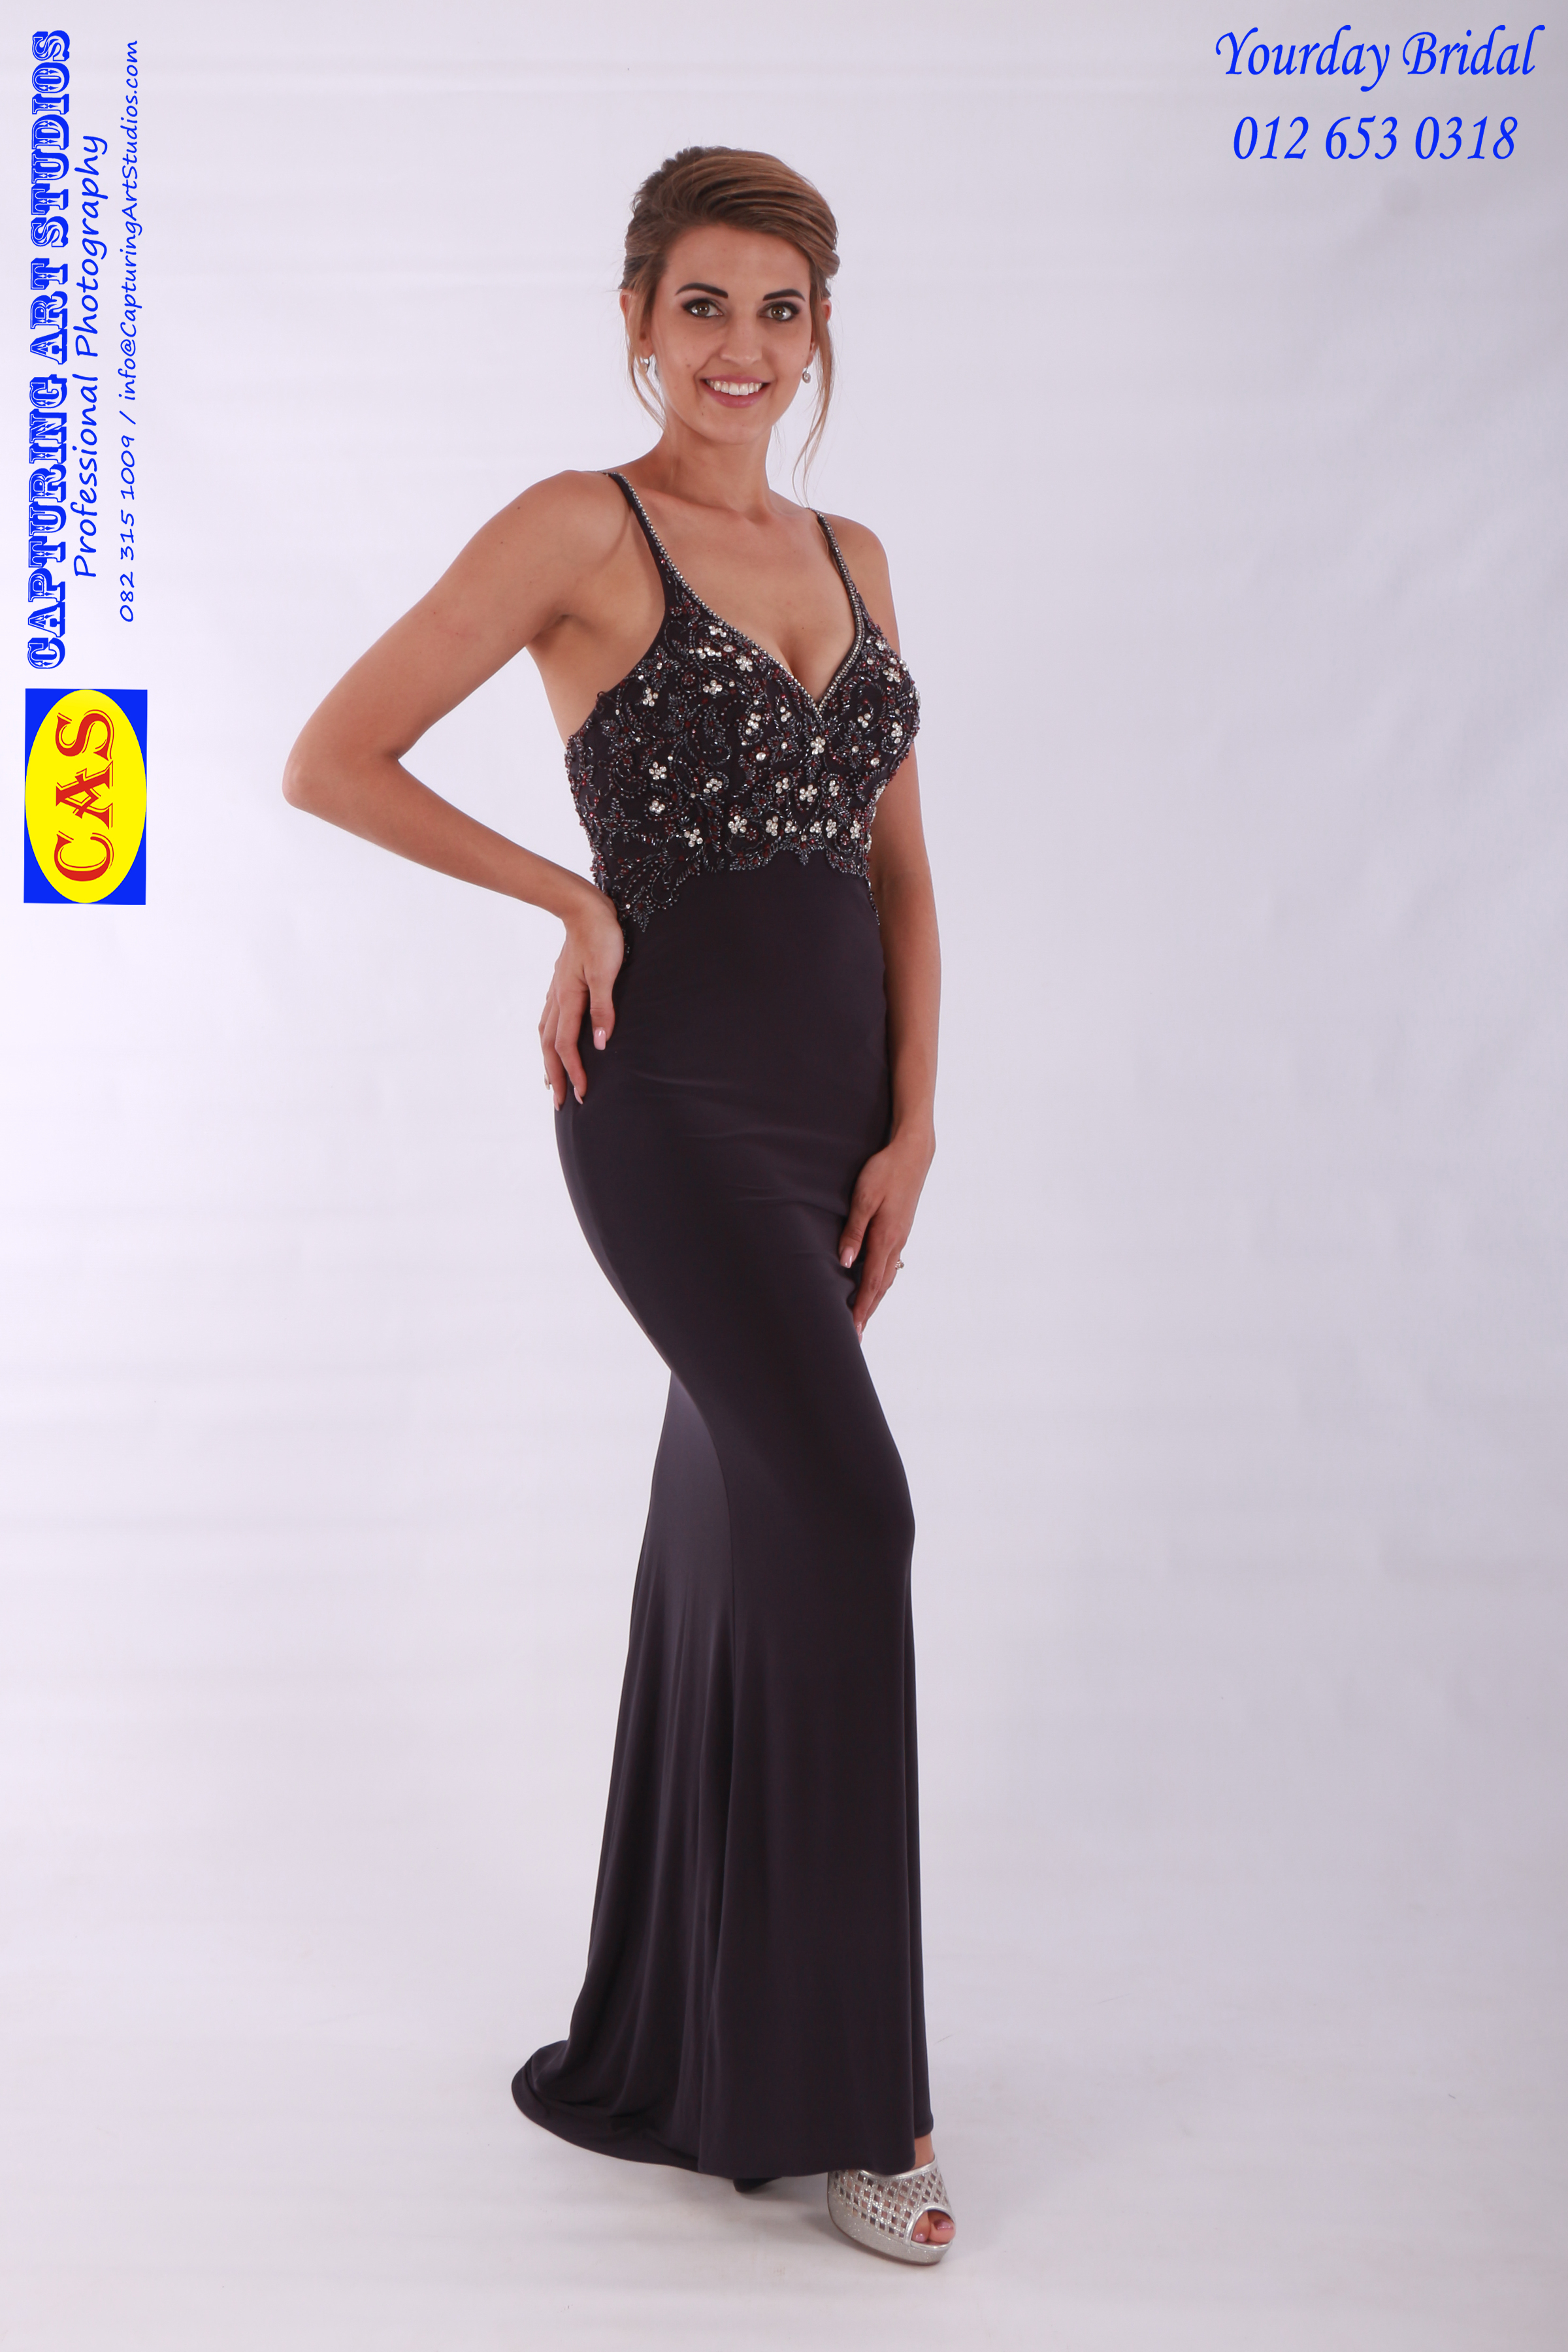 md84875-matric-farewelldance-dresses--matriekafskeidrokke-